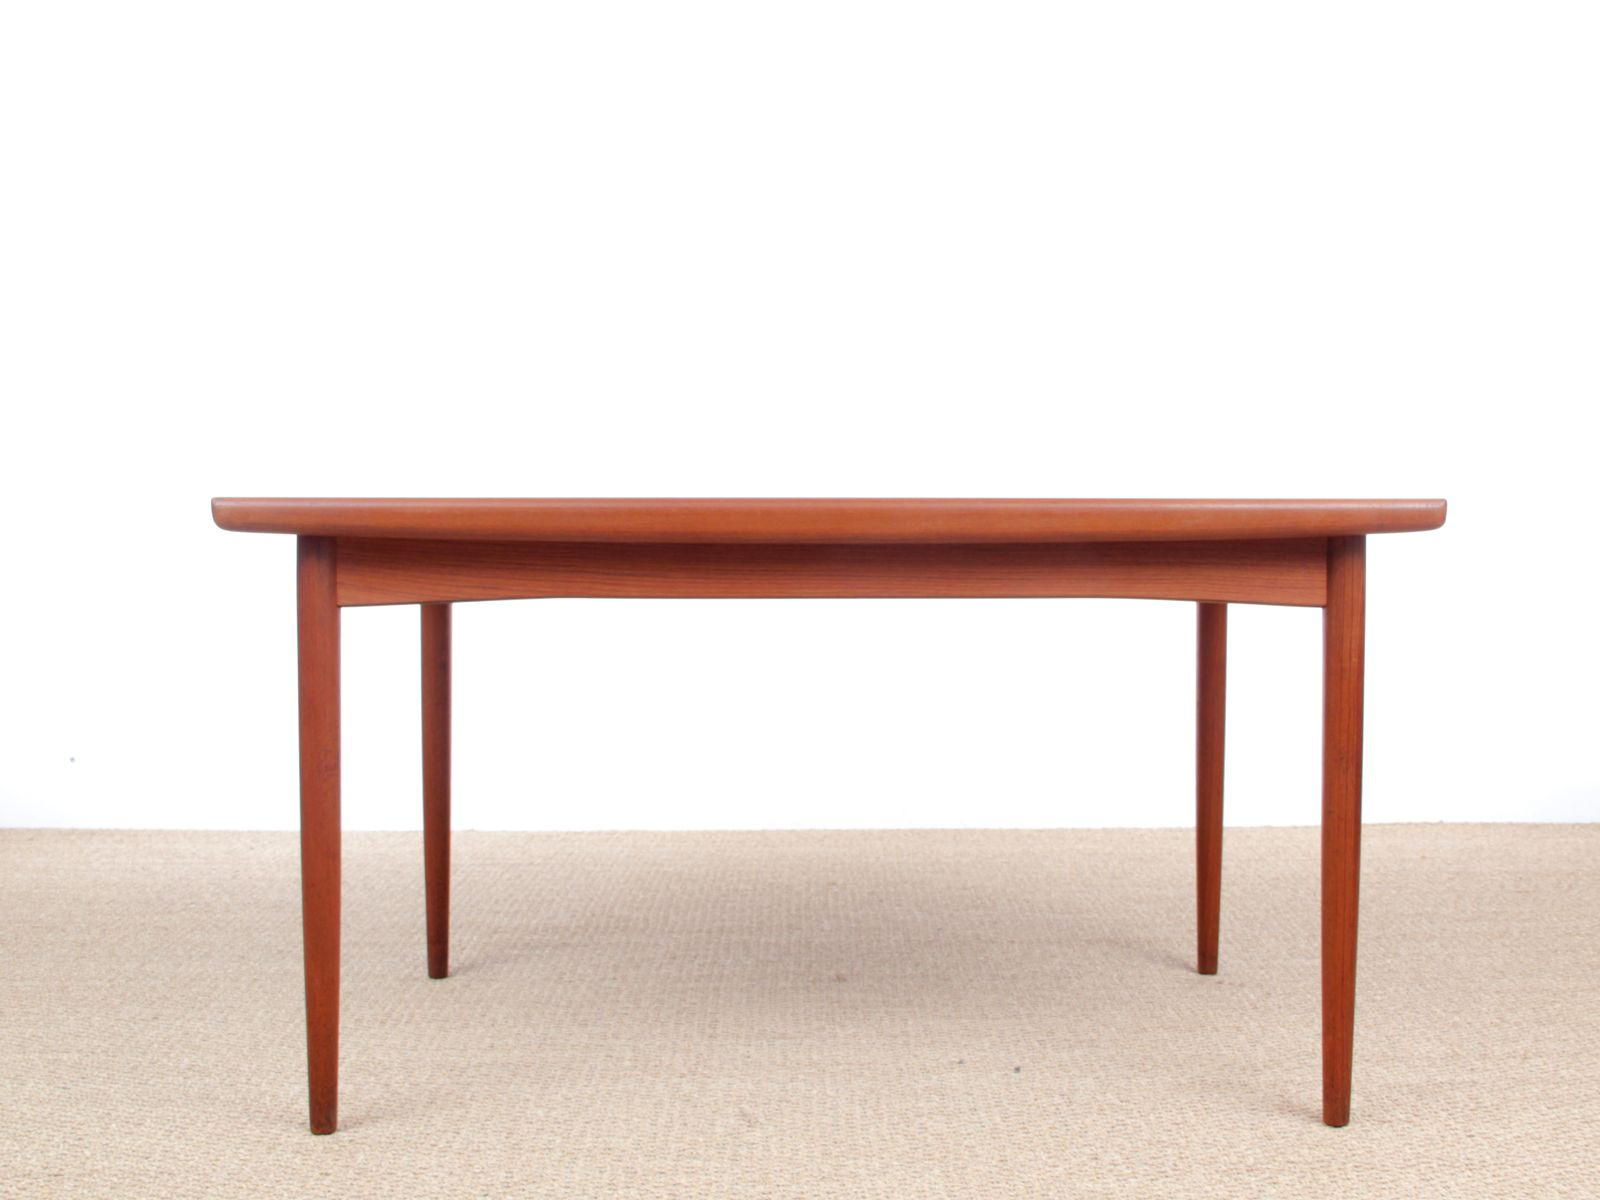 Scandinavian teak dining table from dyrlund 1950s for for Table rallonge scandinave